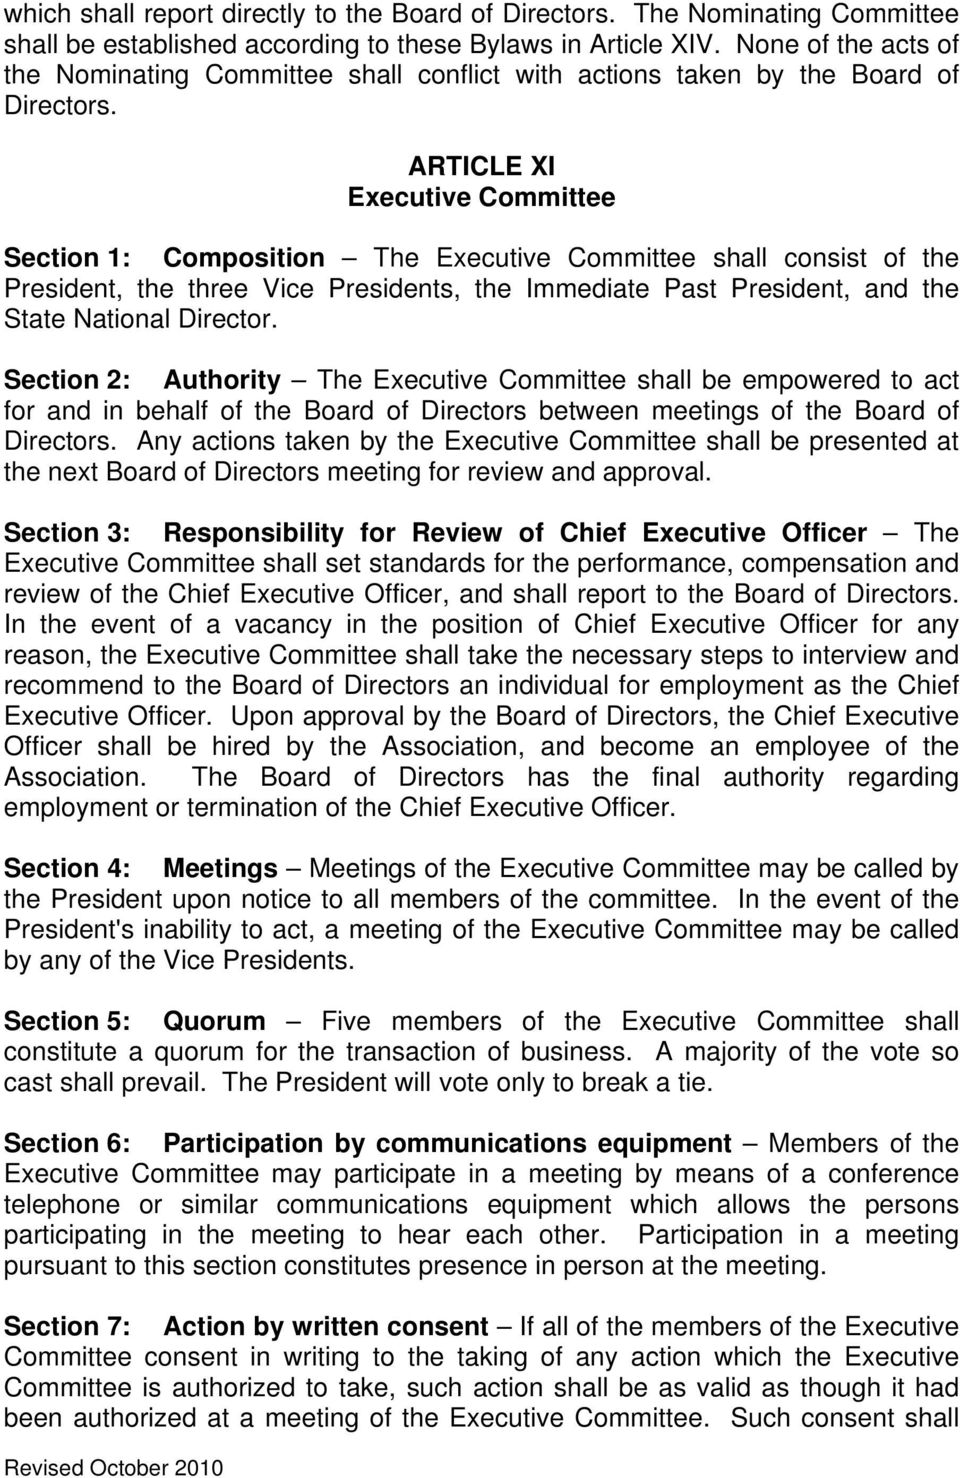 ARTICLE XI Executive Committee Section 1: Composition The Executive Committee shall consist of the President, the three Vice Presidents, the Immediate Past President, and the State National Director.